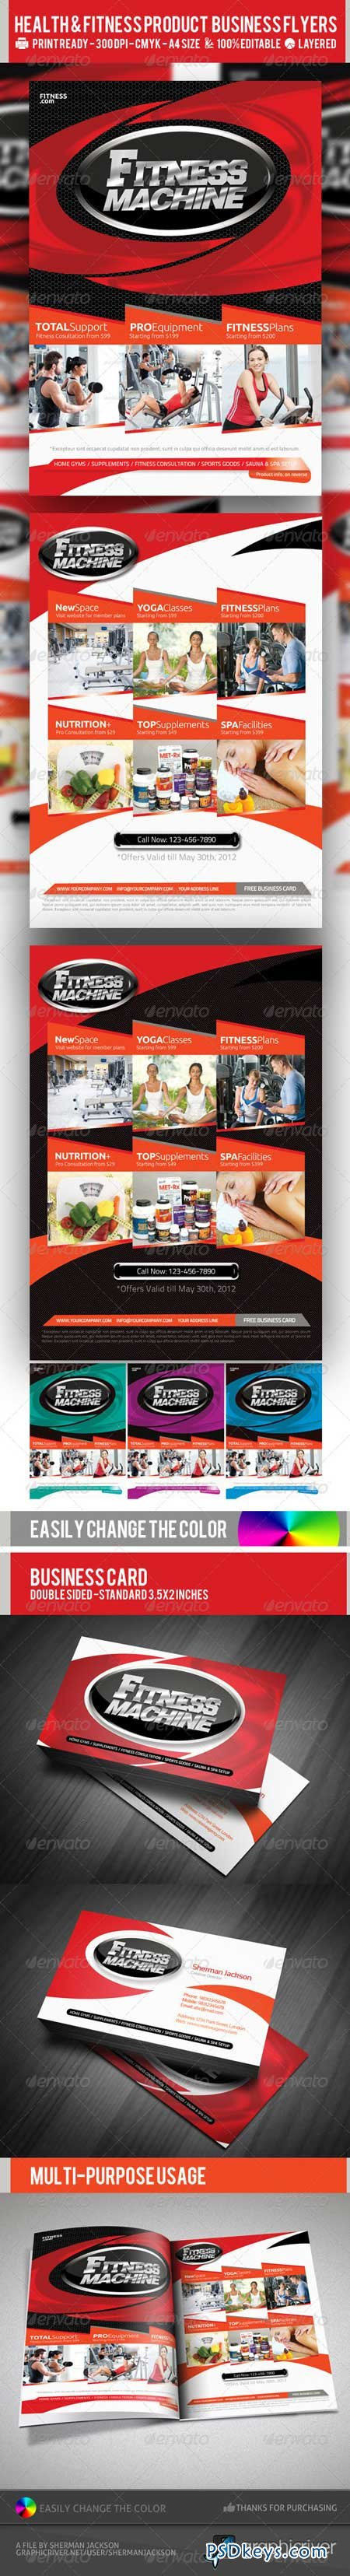 multipurpose fitness or product flyer psd template  multipurpose fitness or product flyer psd template 2347386